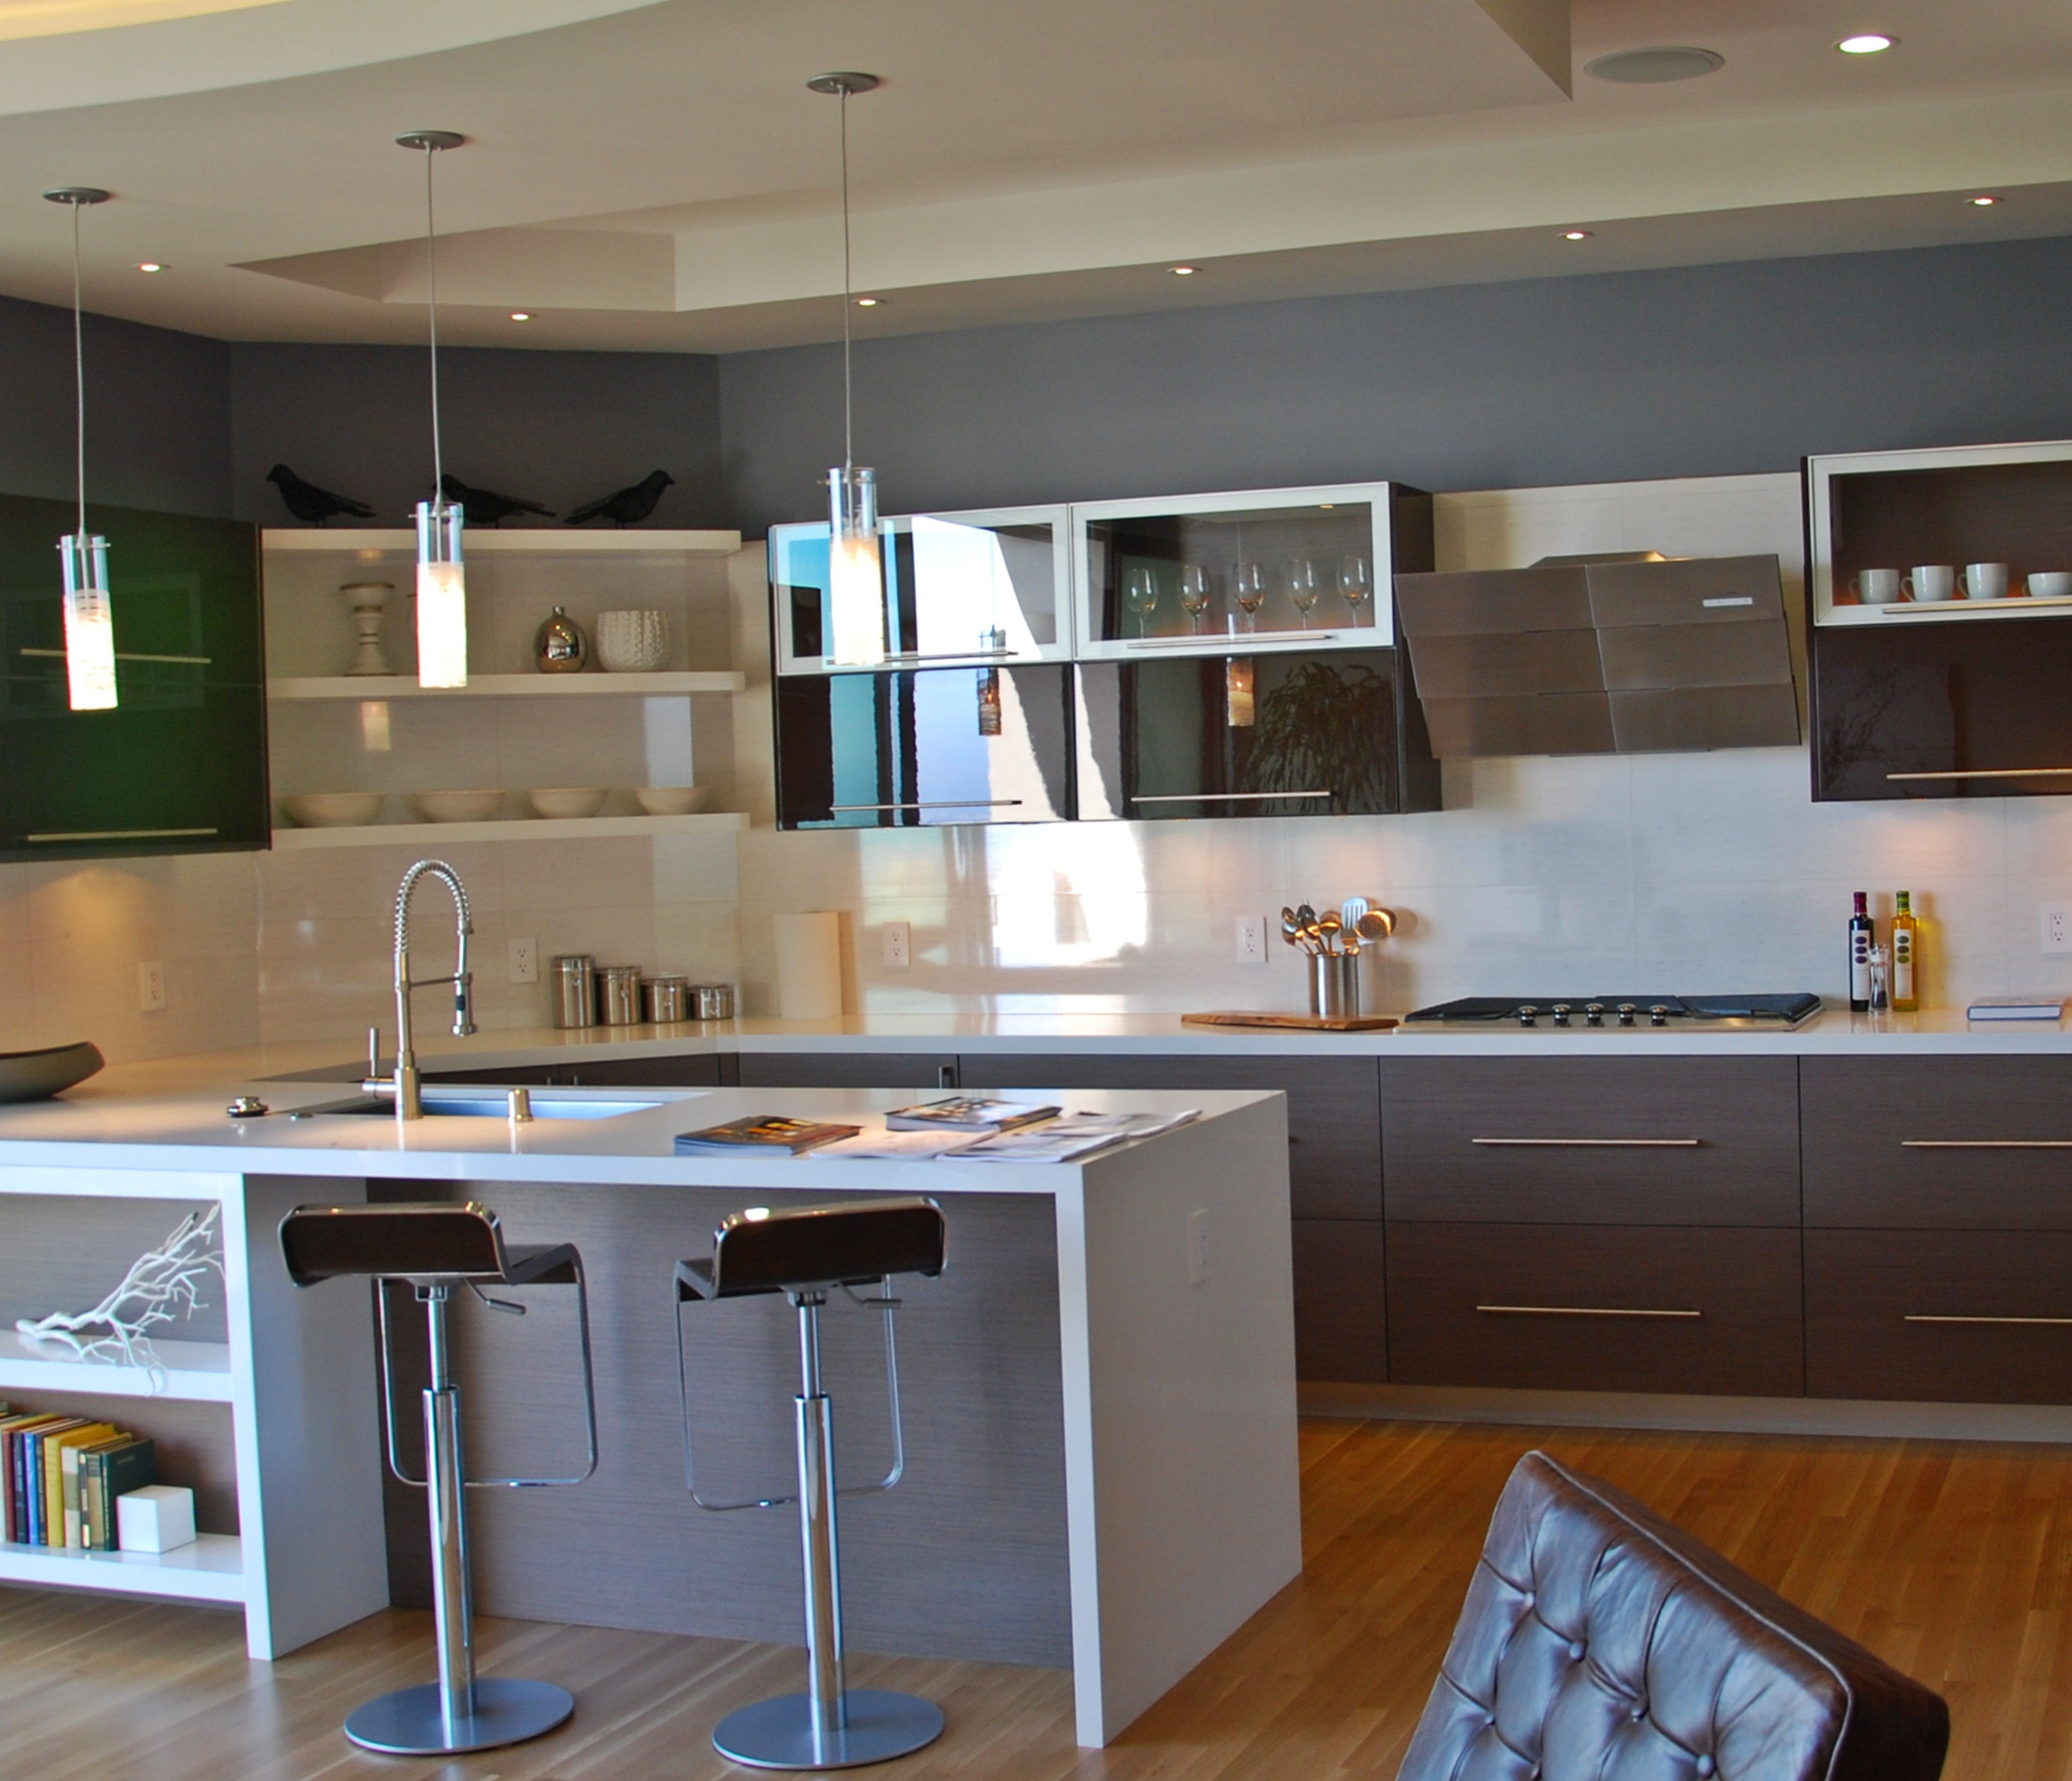 Kitchen Cabinets Oakland Ca: Bay Area Cabinetry